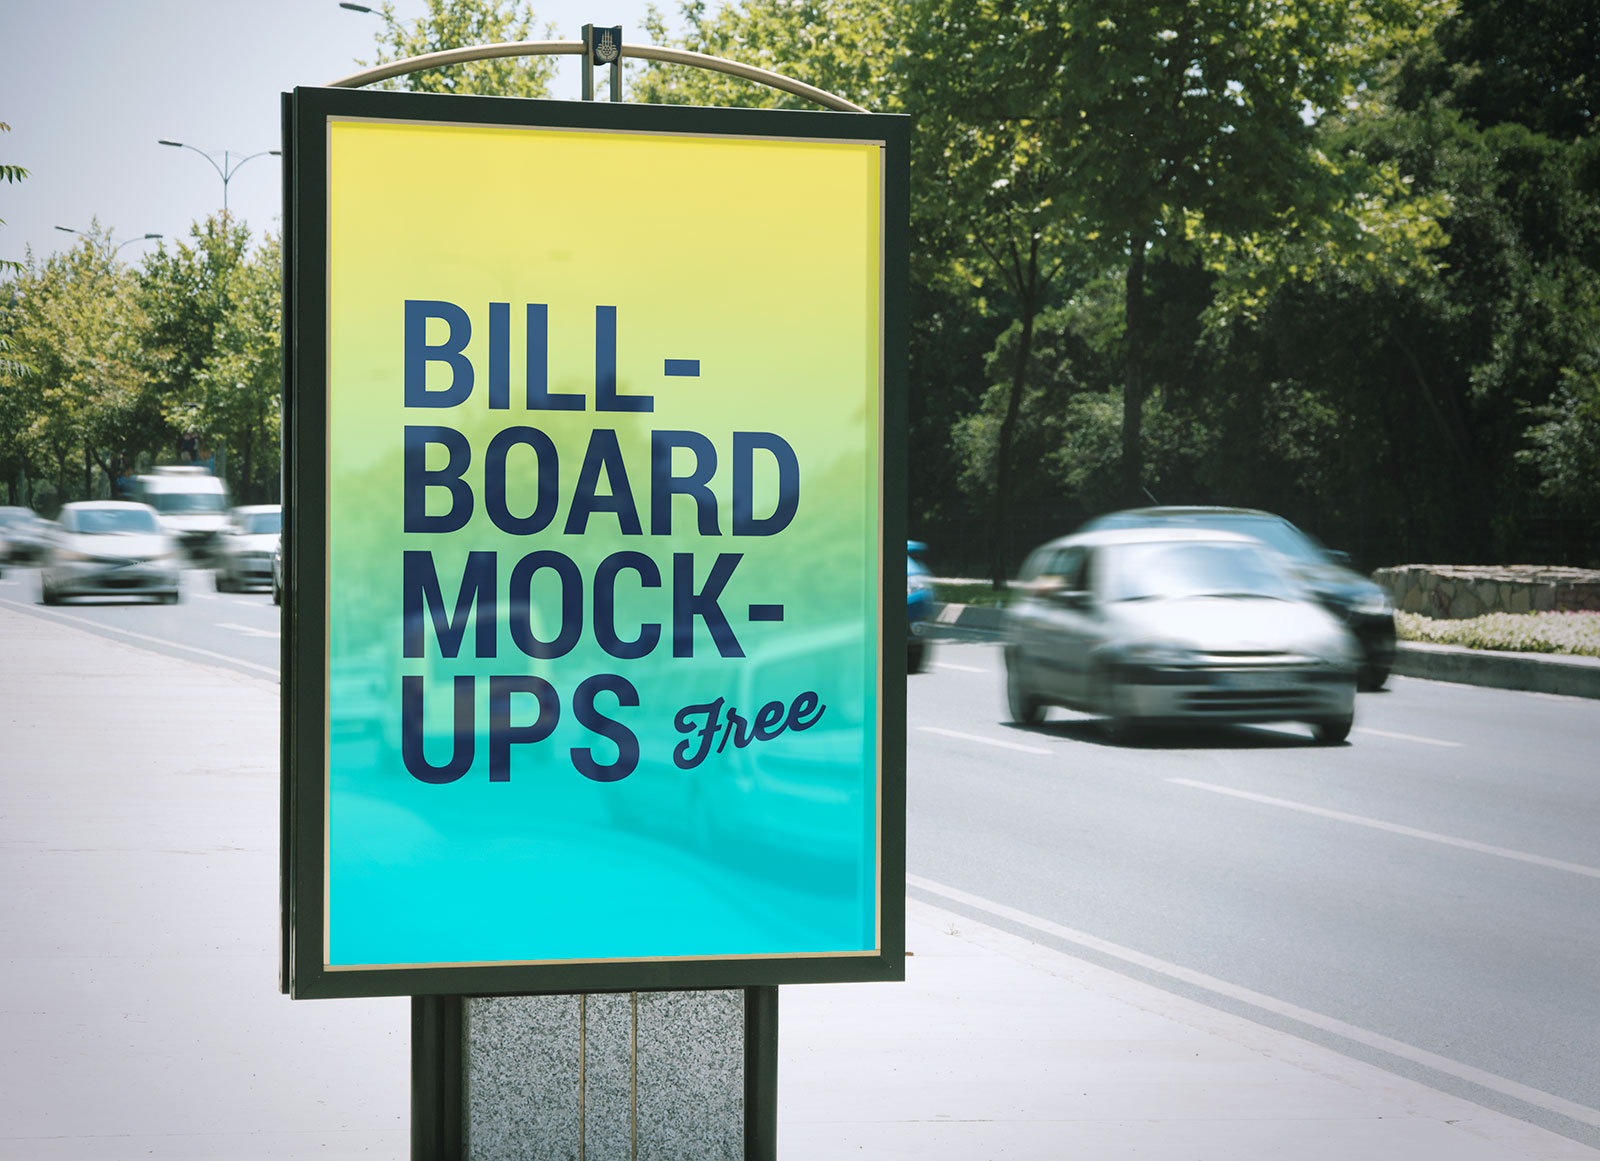 2-Free-Bus-Stop-&-Roadside-Billboard-Mockup-PSD-Files